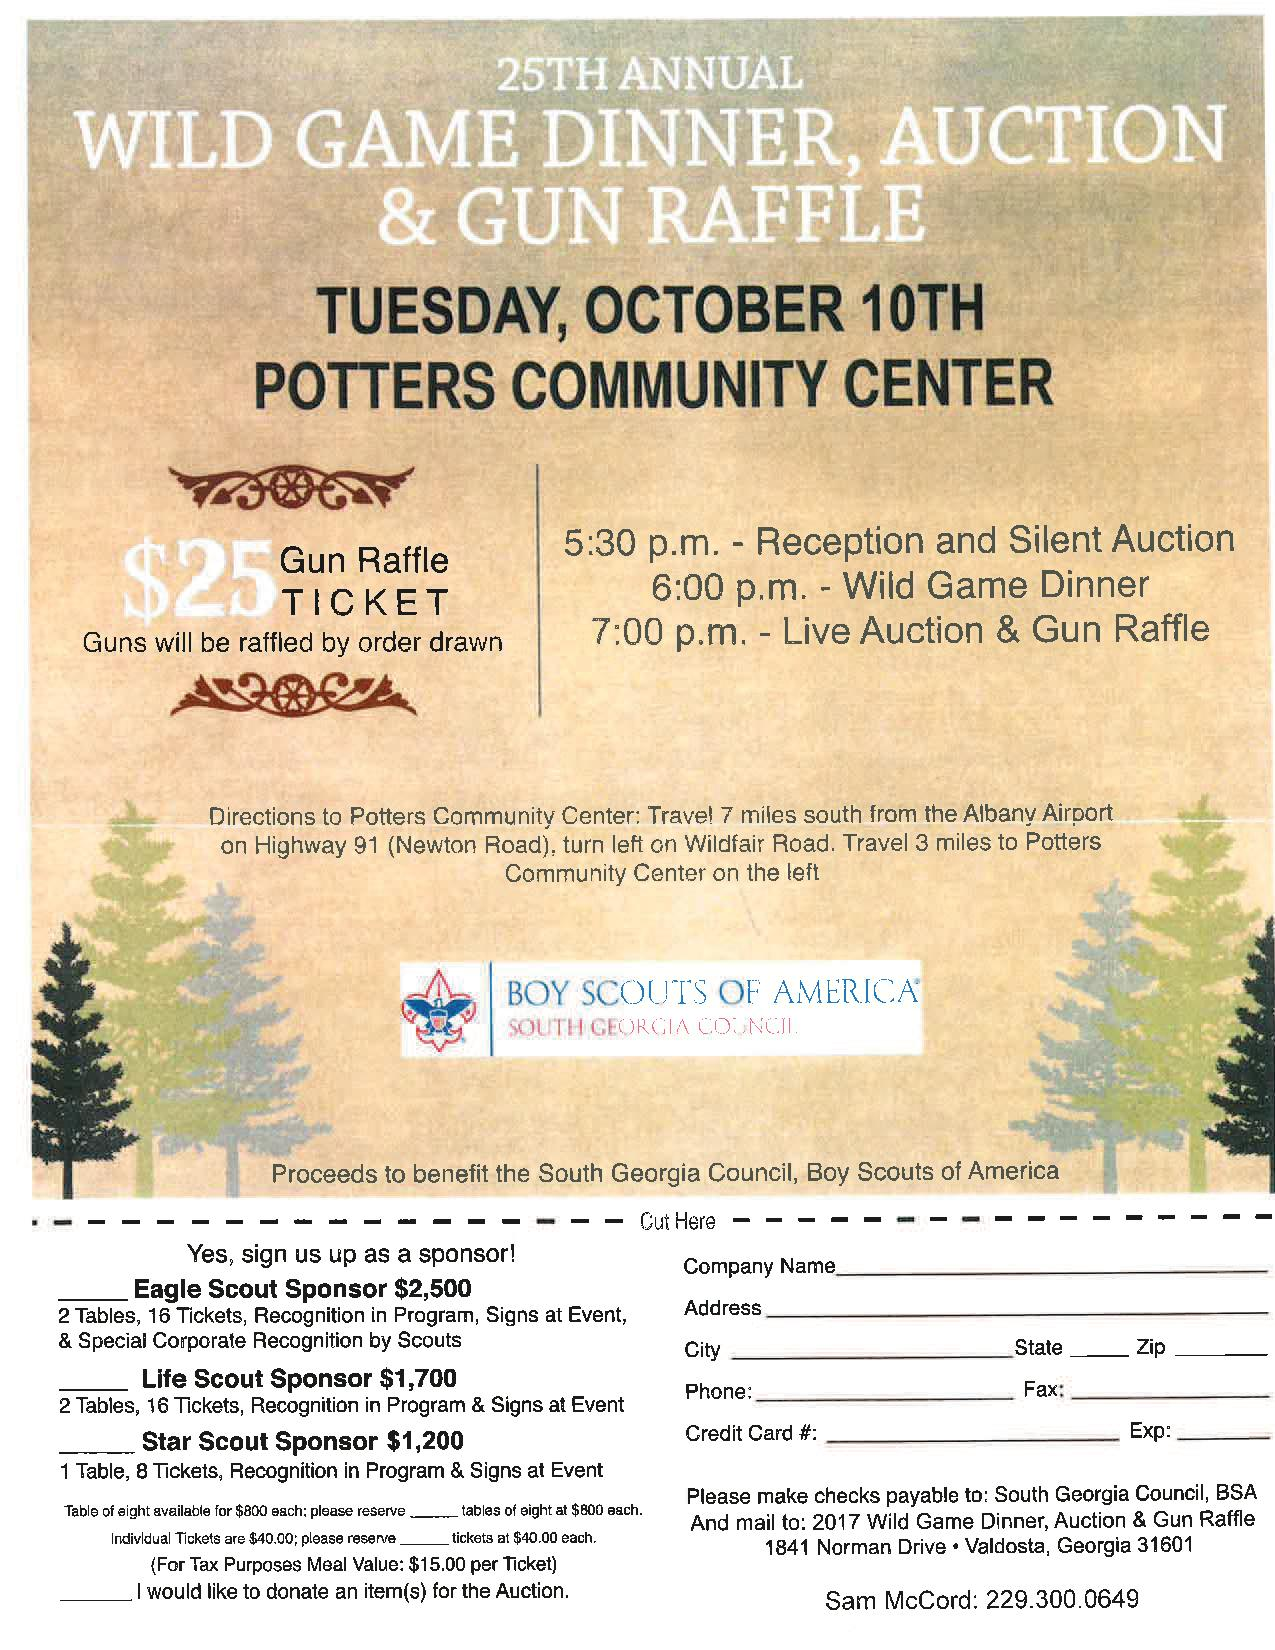 25th Annual Wild Game Dinner, Auction and Gun Raffle